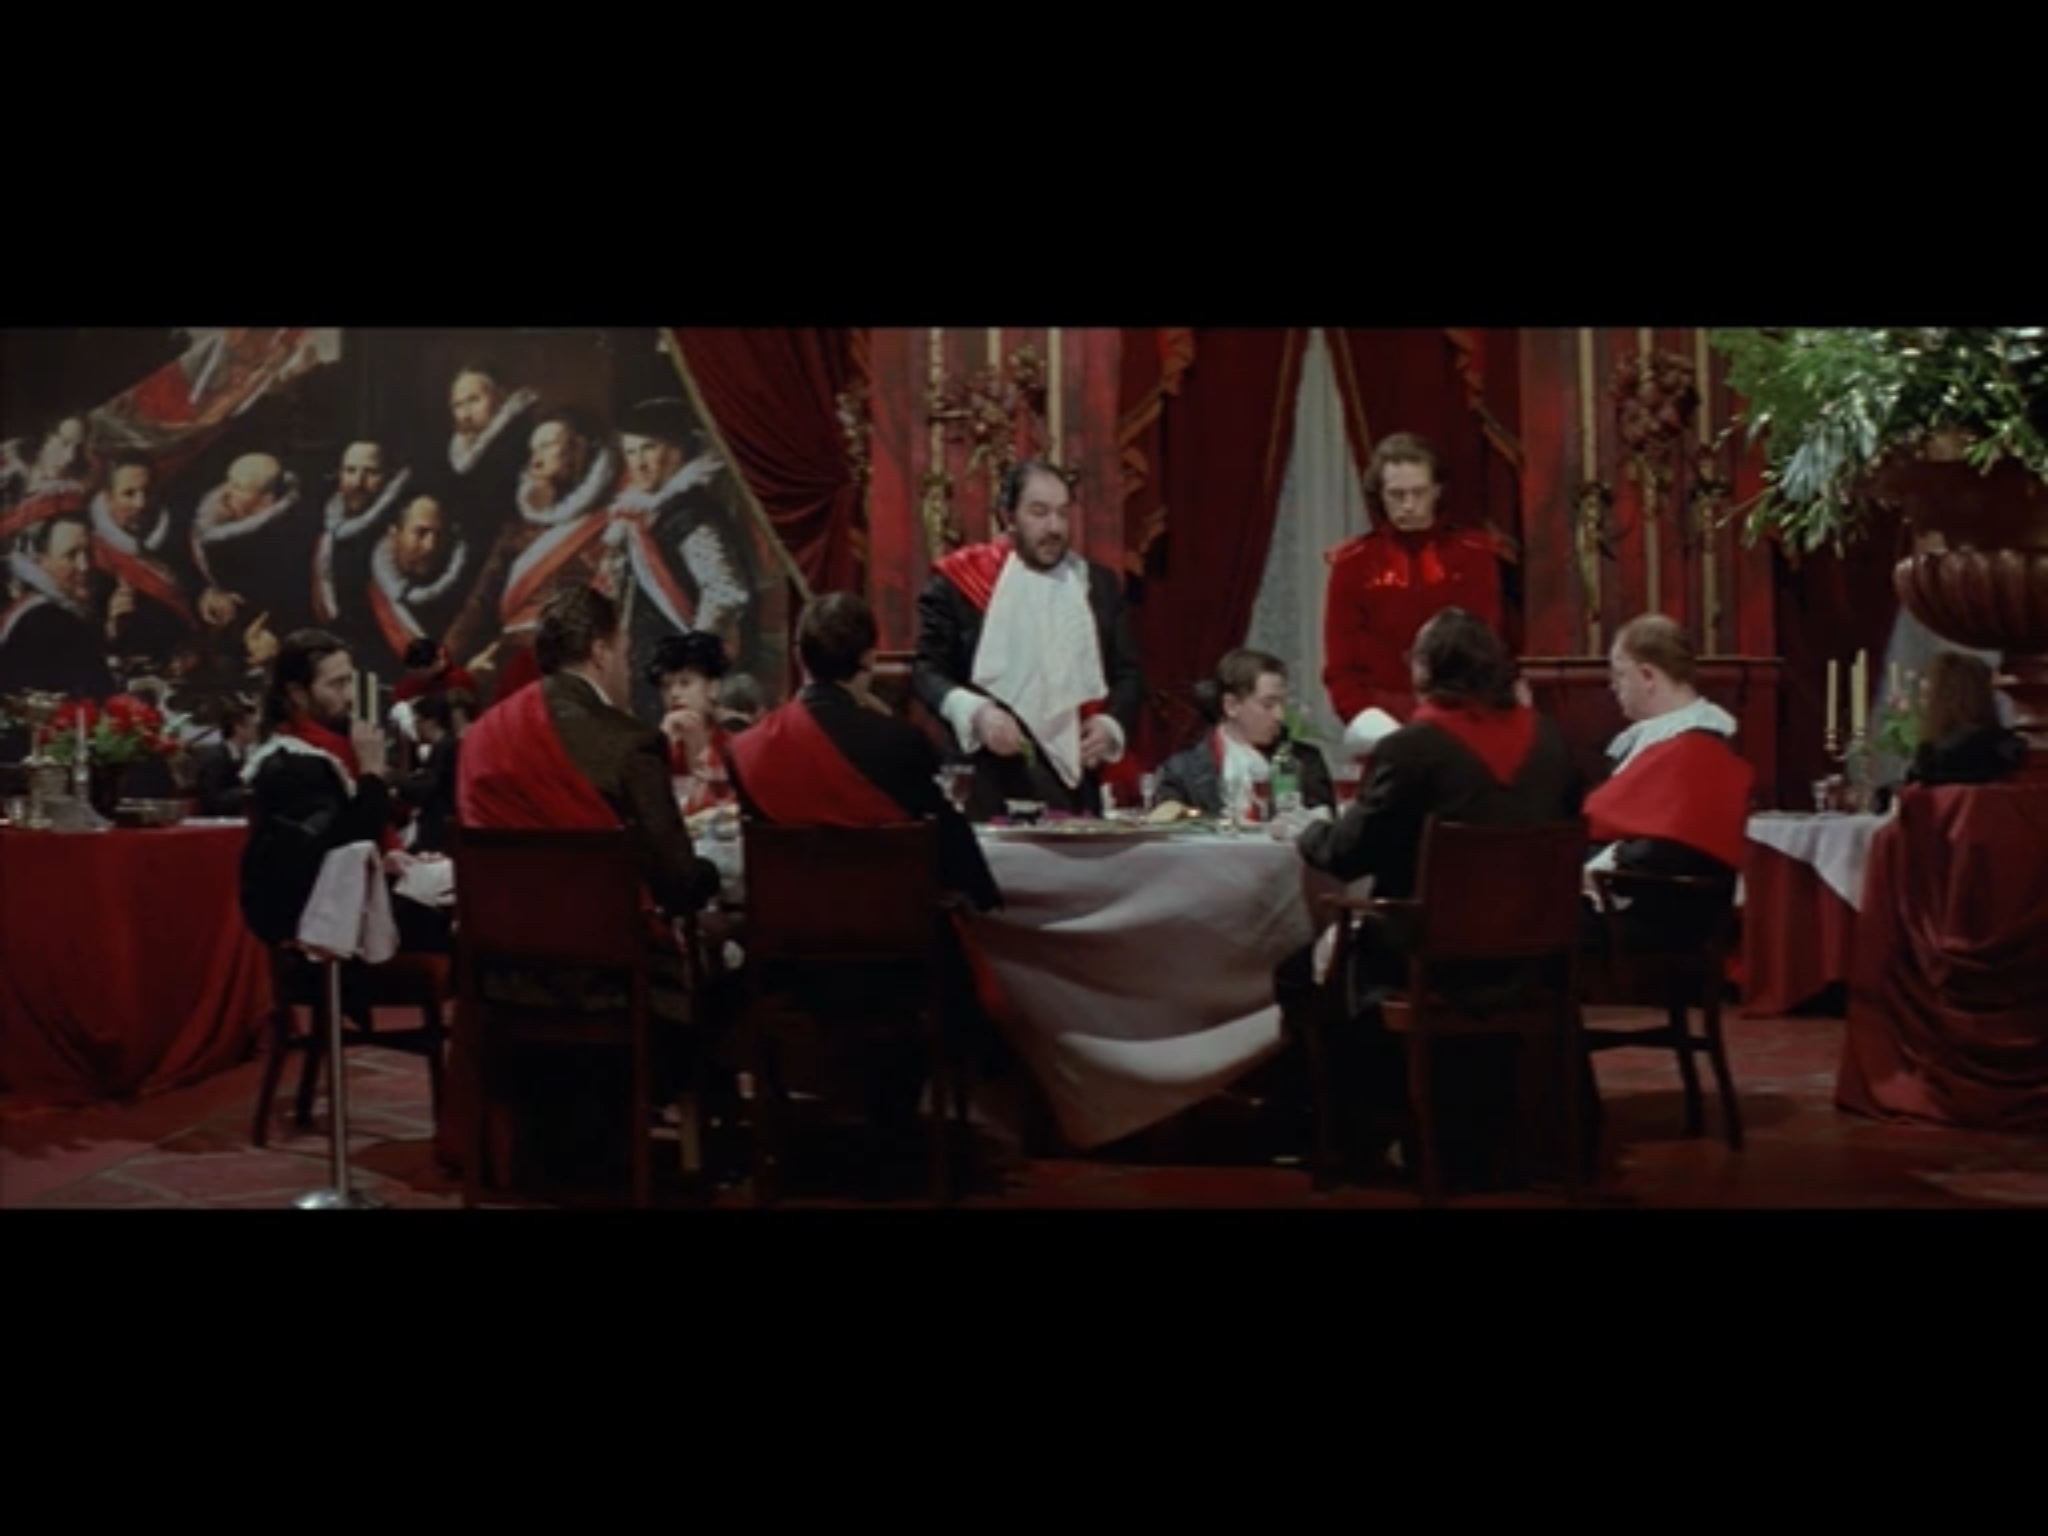 Peter-Greenaway-The-Cook-the-Thief.png